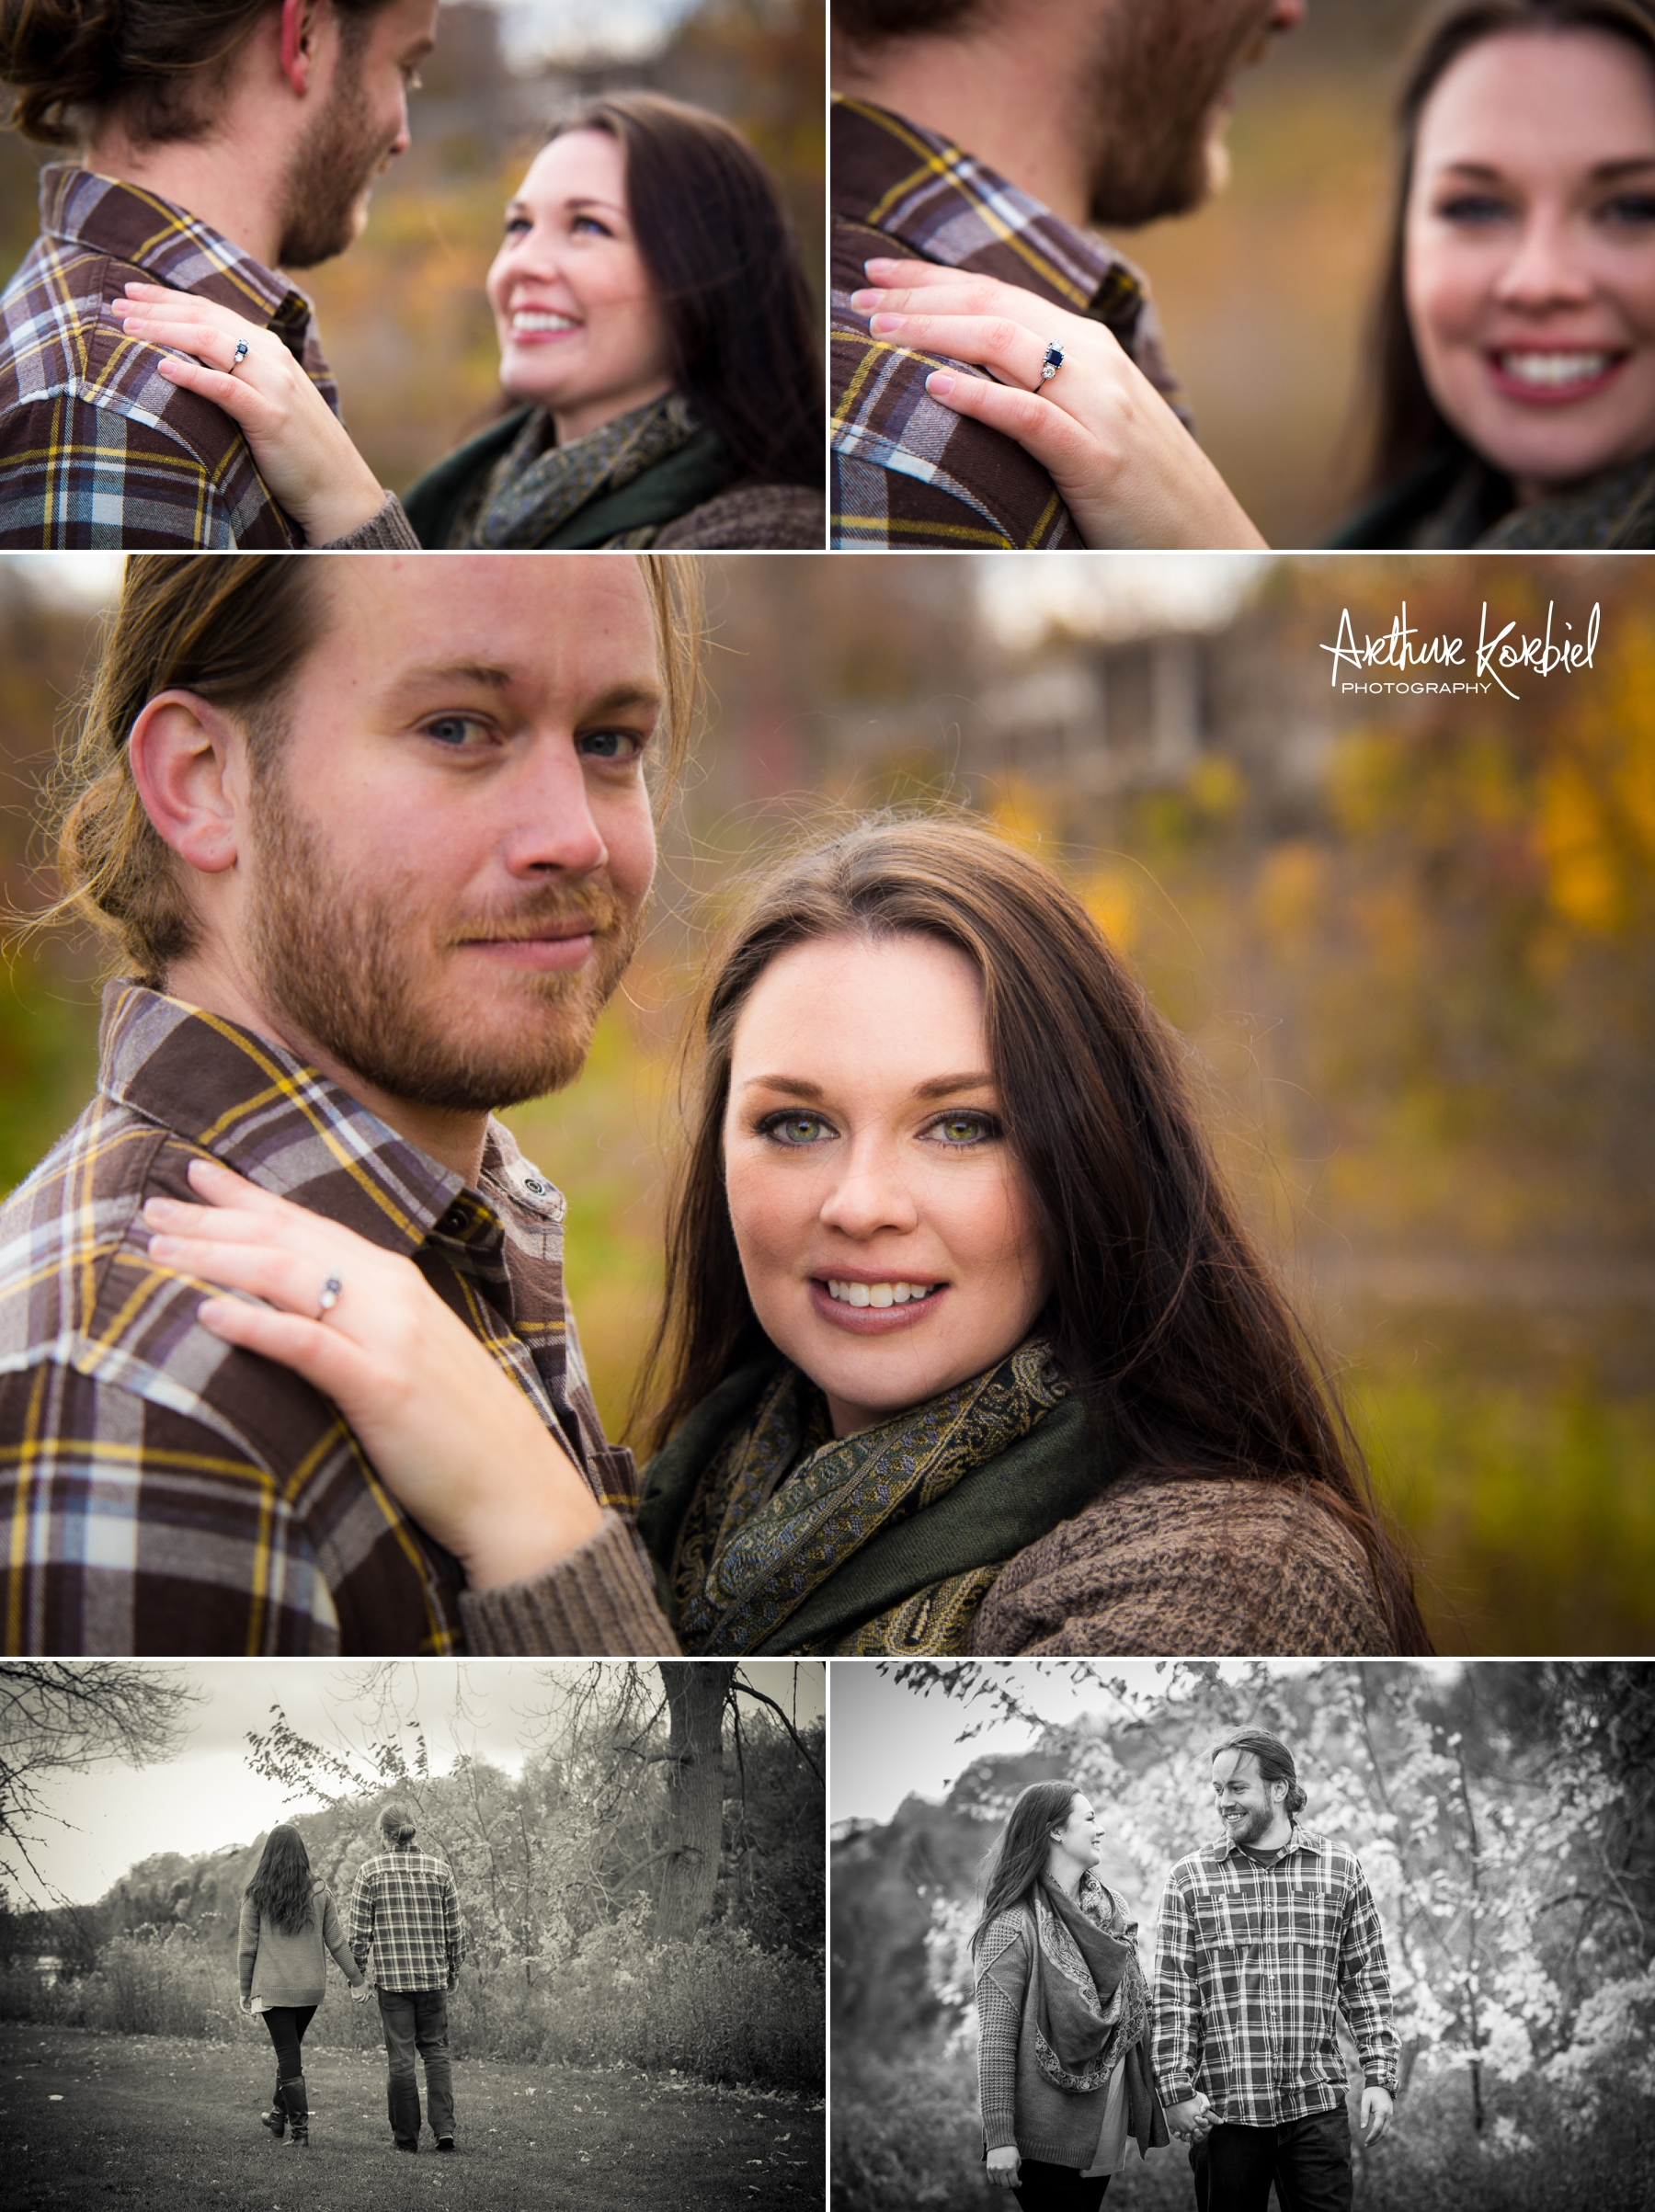 Arthur Korbiel Photography - London Engagement Photographer - Heather & Addison_007.jpg